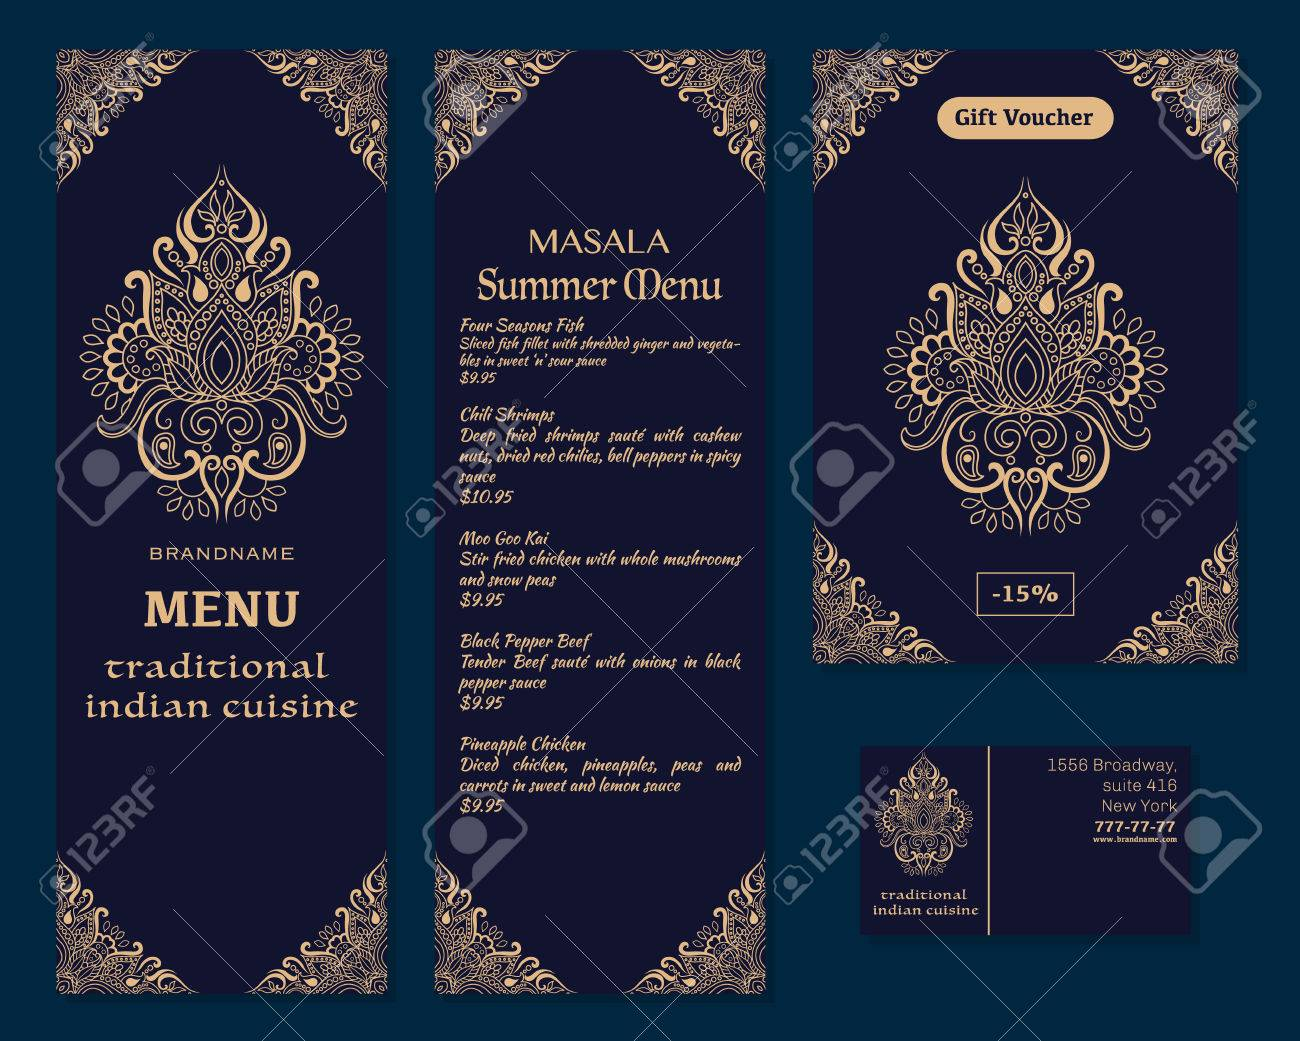 A vector illustration of a menu for a restaurant or cafe indian logos lotus flower illustration a vector illustration of a menu for a restaurant or cafe indian oriental cuisine business mightylinksfo